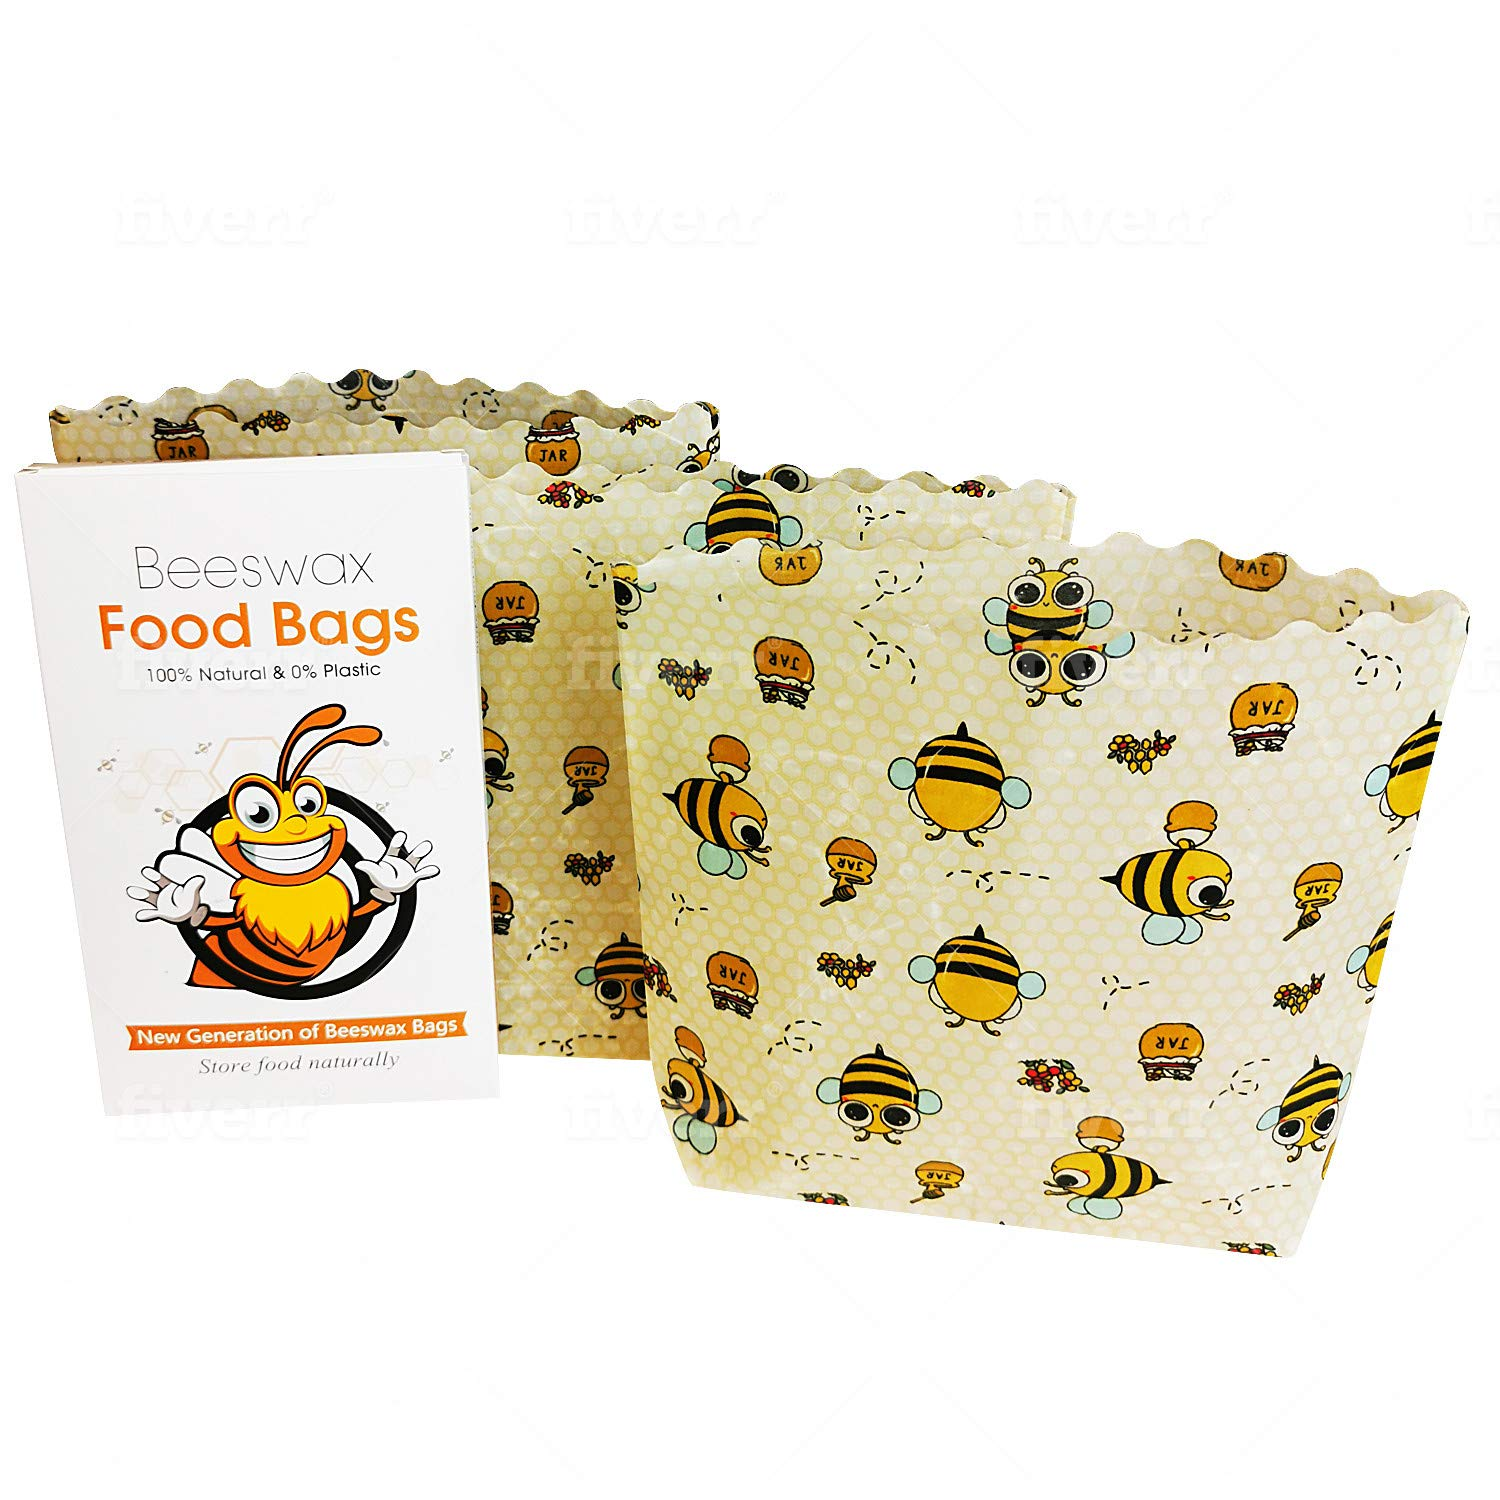 Beeswax Food Bags | 3 Small Size Bags 7x8x2 Inches | Cotton Fiber with Beeswax | Reusable & Biodegradable | Plastic-Free